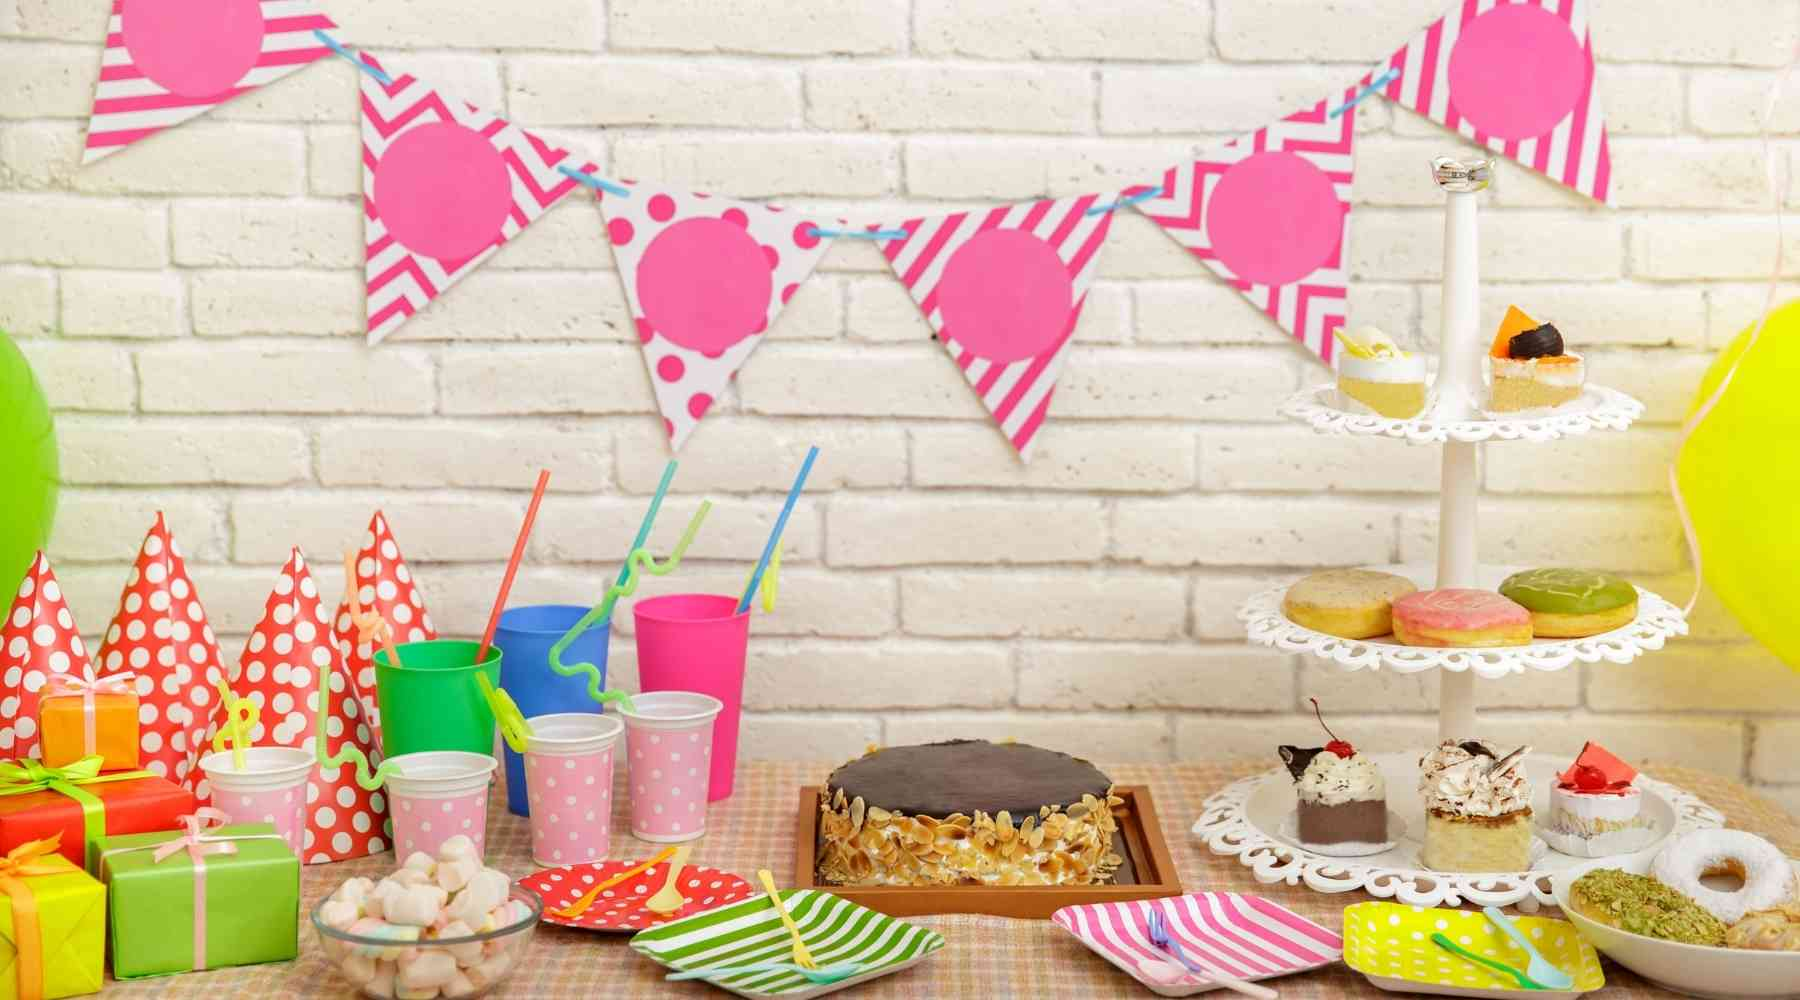 Best Things to Sell on Etsy - Party Supplies